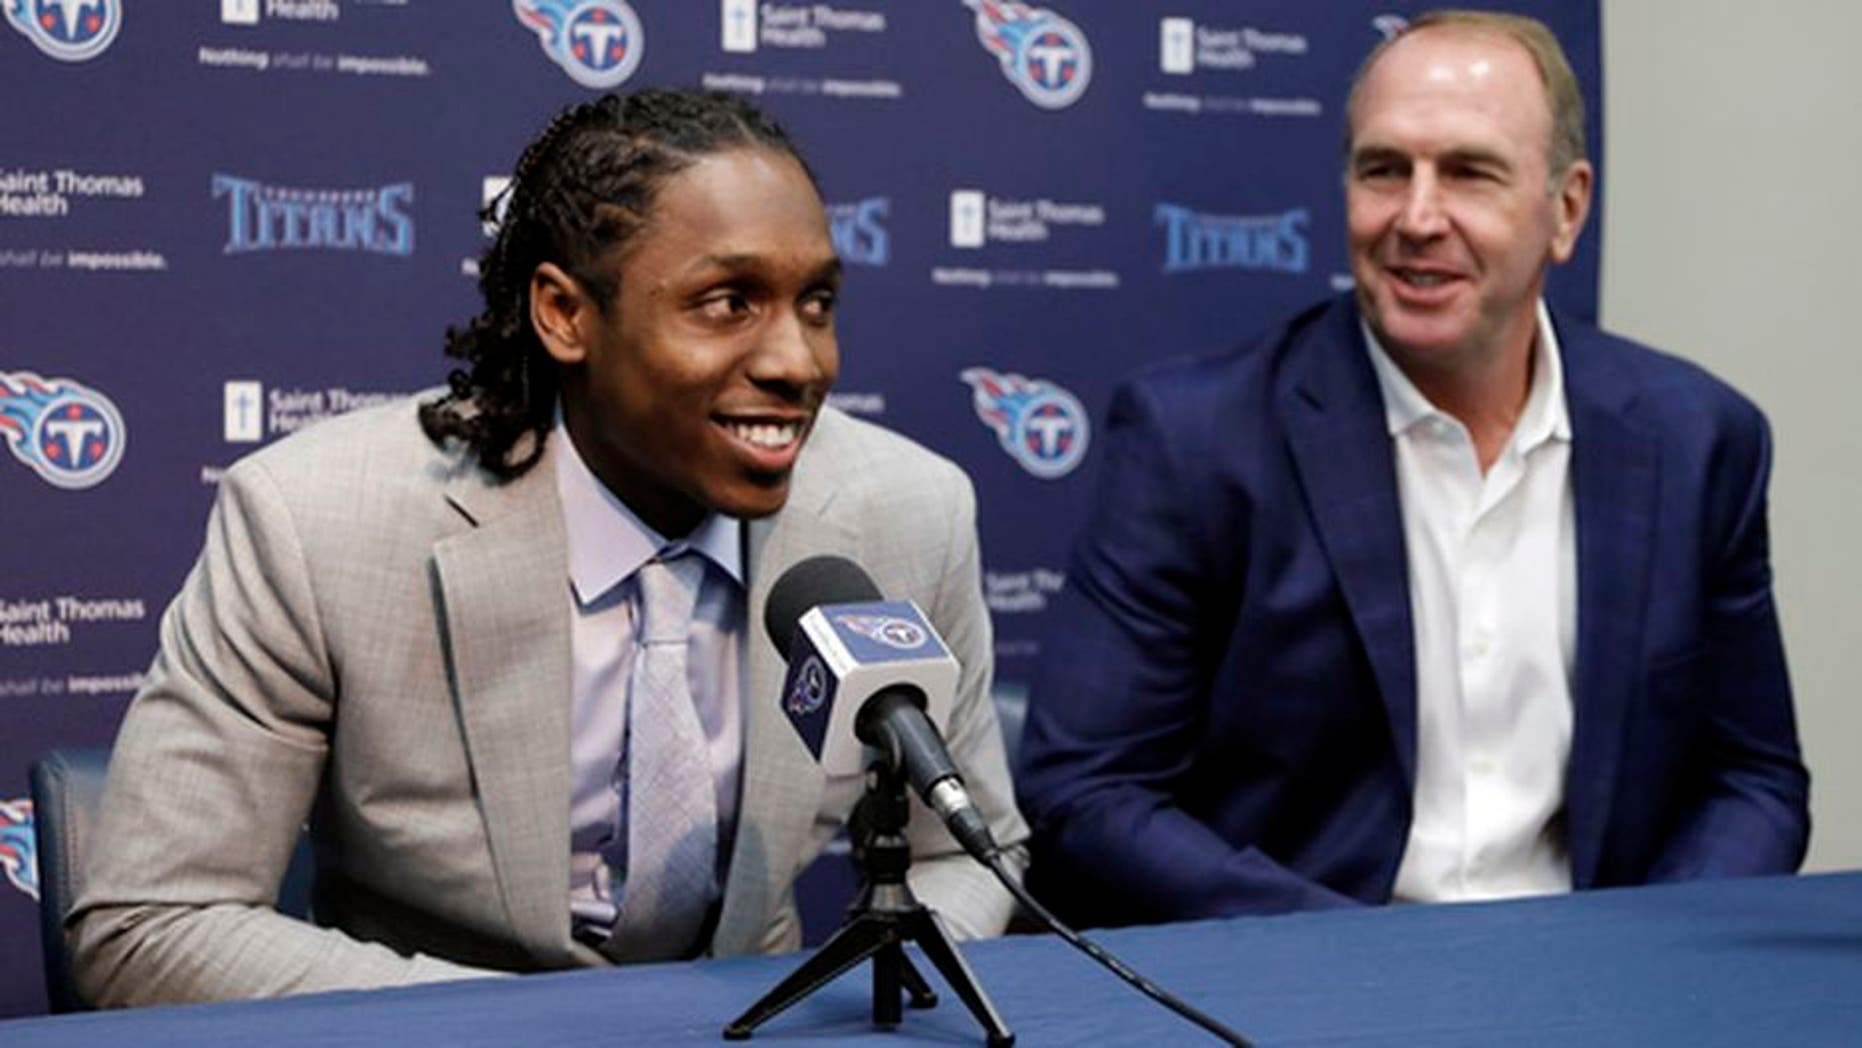 Southern California defensive back Adoree' Jackson, left, answers questions as he sits with Tennessee Titans coach Mike Mularkey during a news conference Friday, April 28, 2017, in Nashville, Tenn. Jackson is the NFL football team's second pick in the draft. (AP Photo/Mark Humphrey)